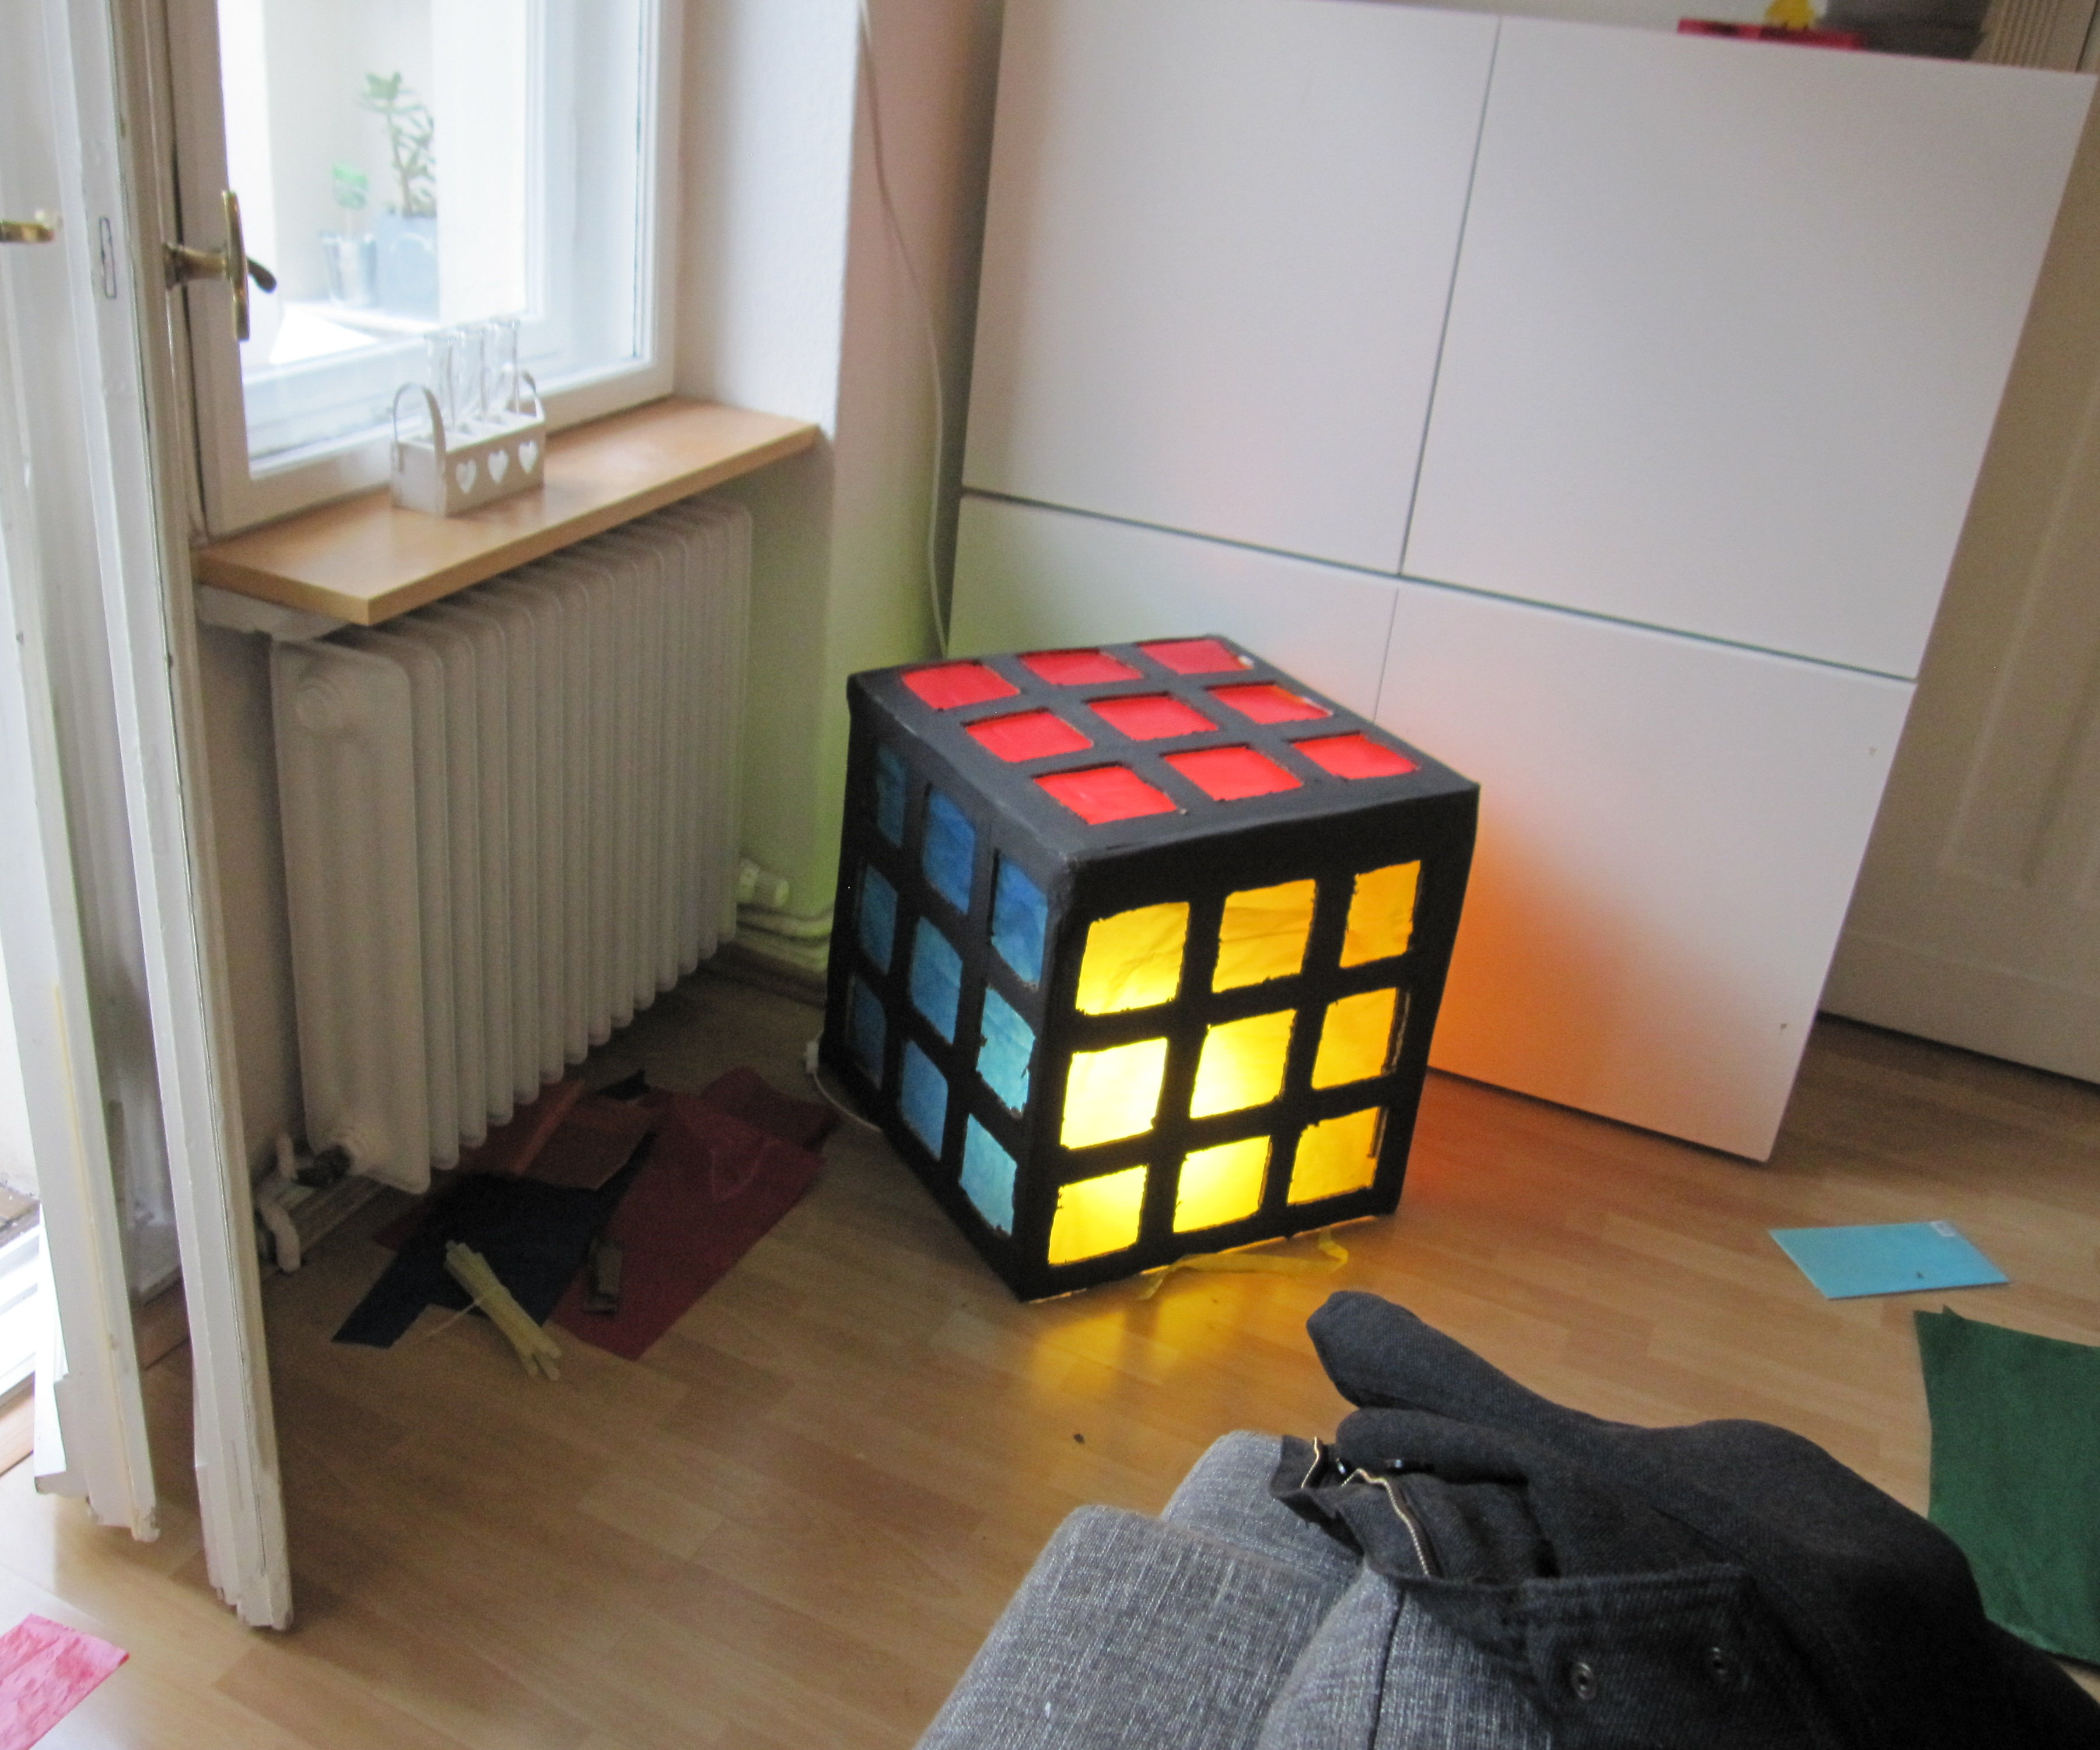 Rubiks Cube lamp shade